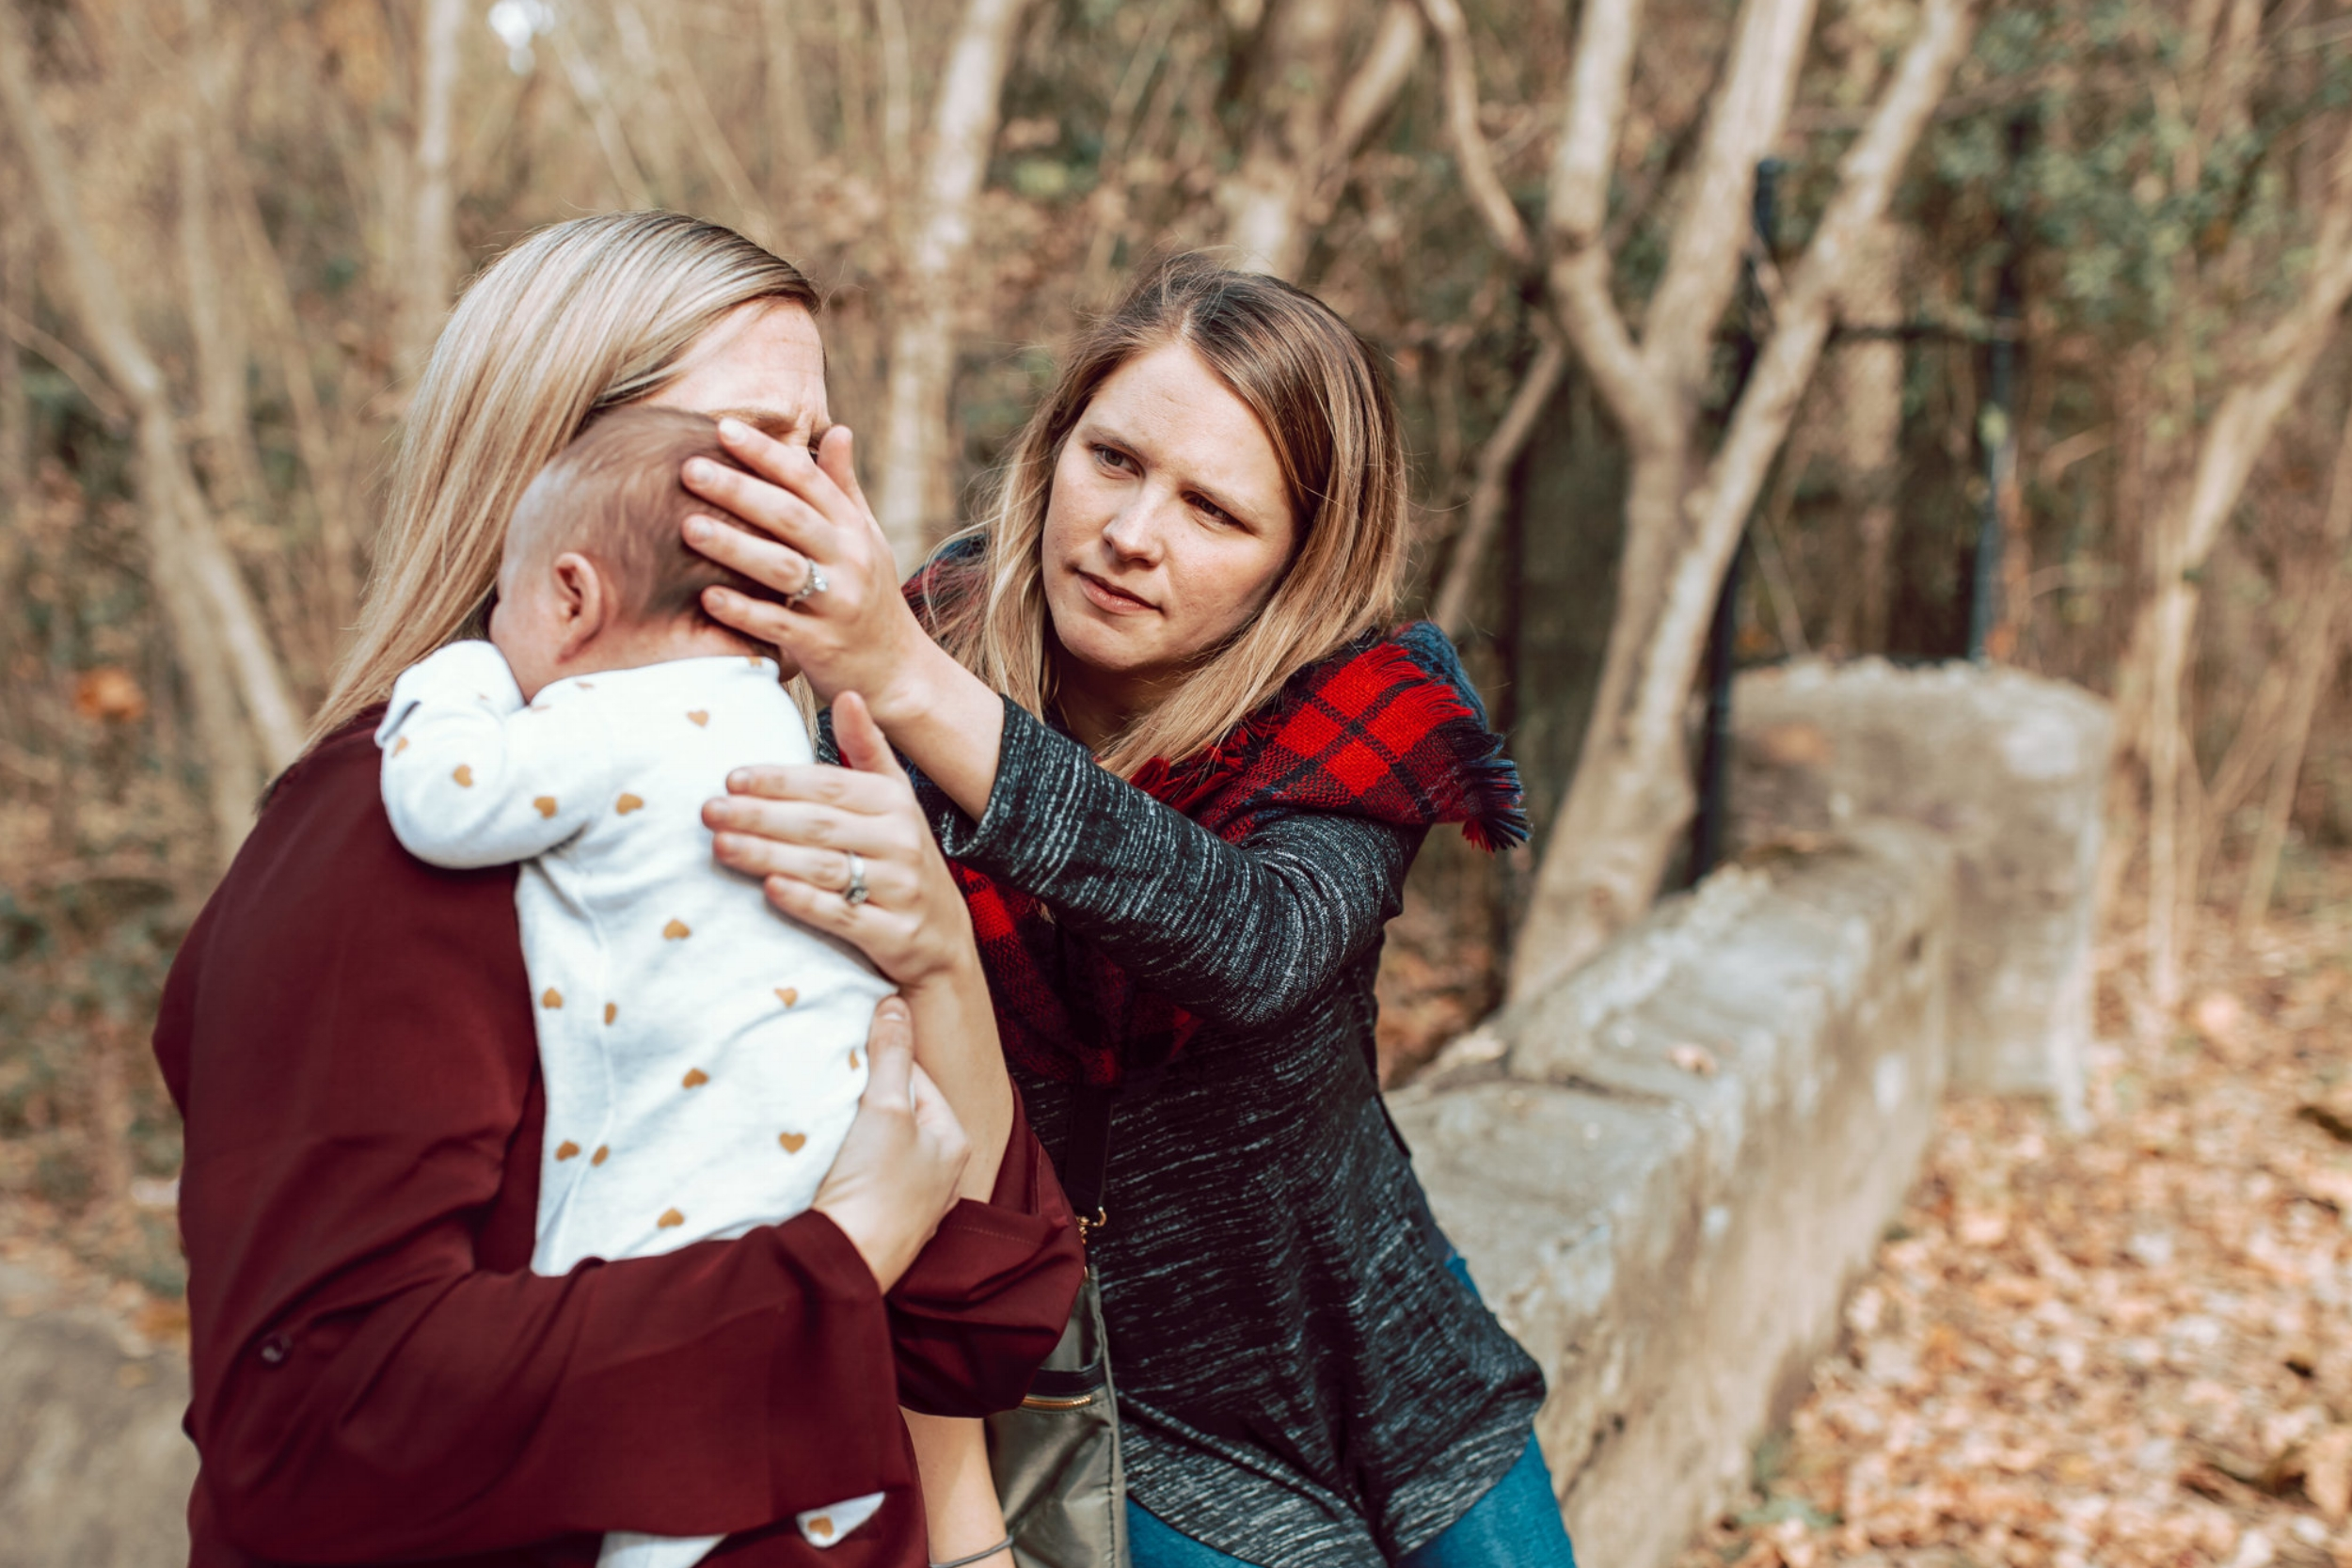 comforting new baby mom and aunt overton park fall memphis